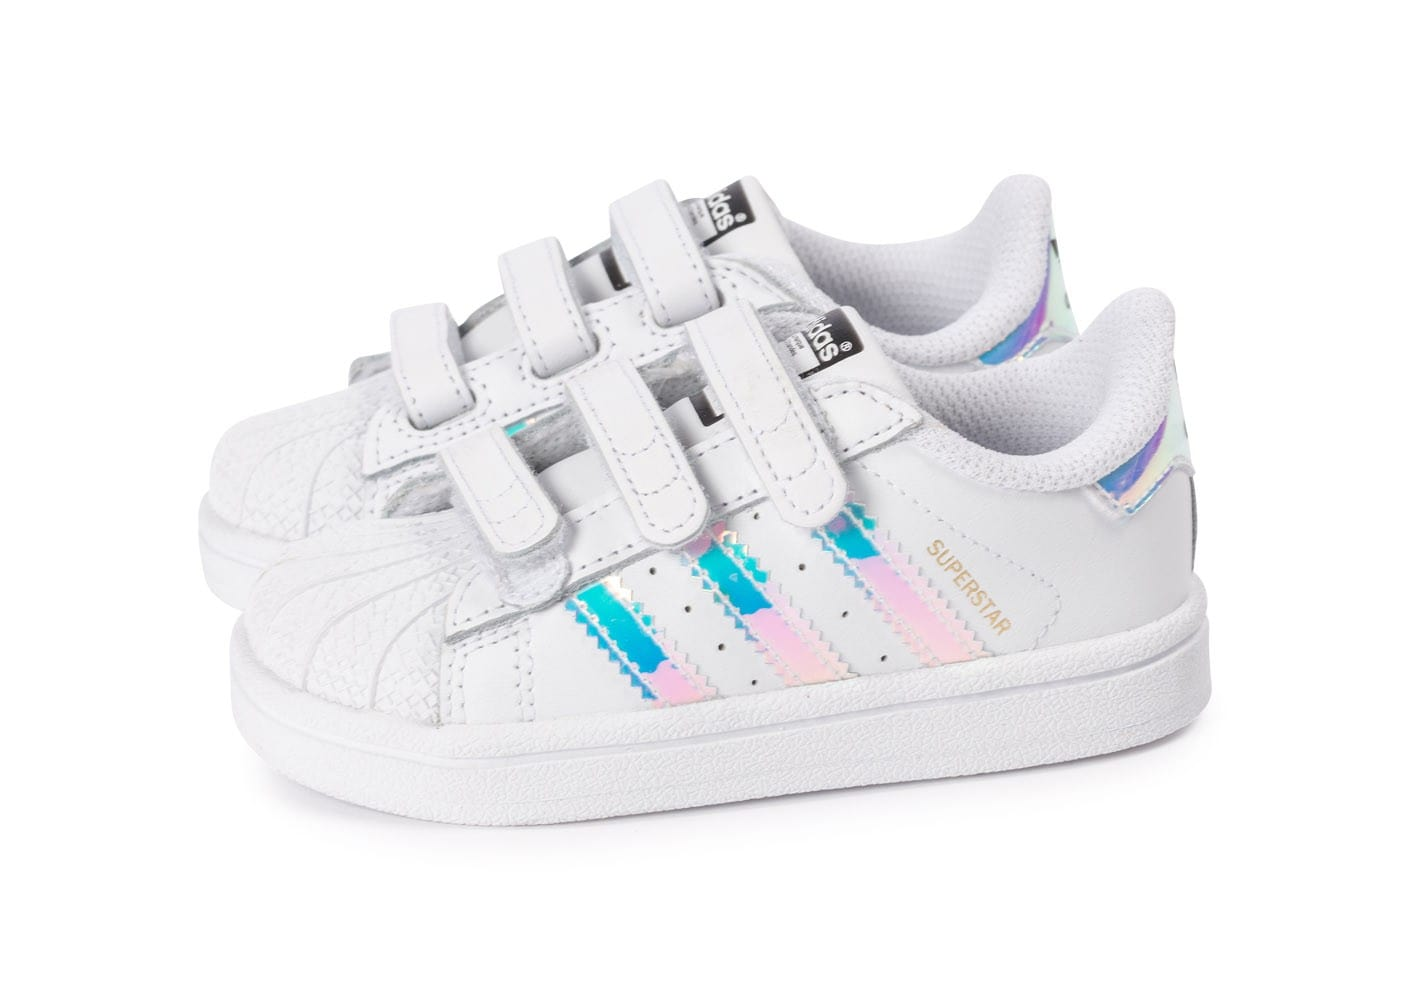 Scratch Superstar Adidas Fille Superstar Adidas Pikxzu reQdCxBWo